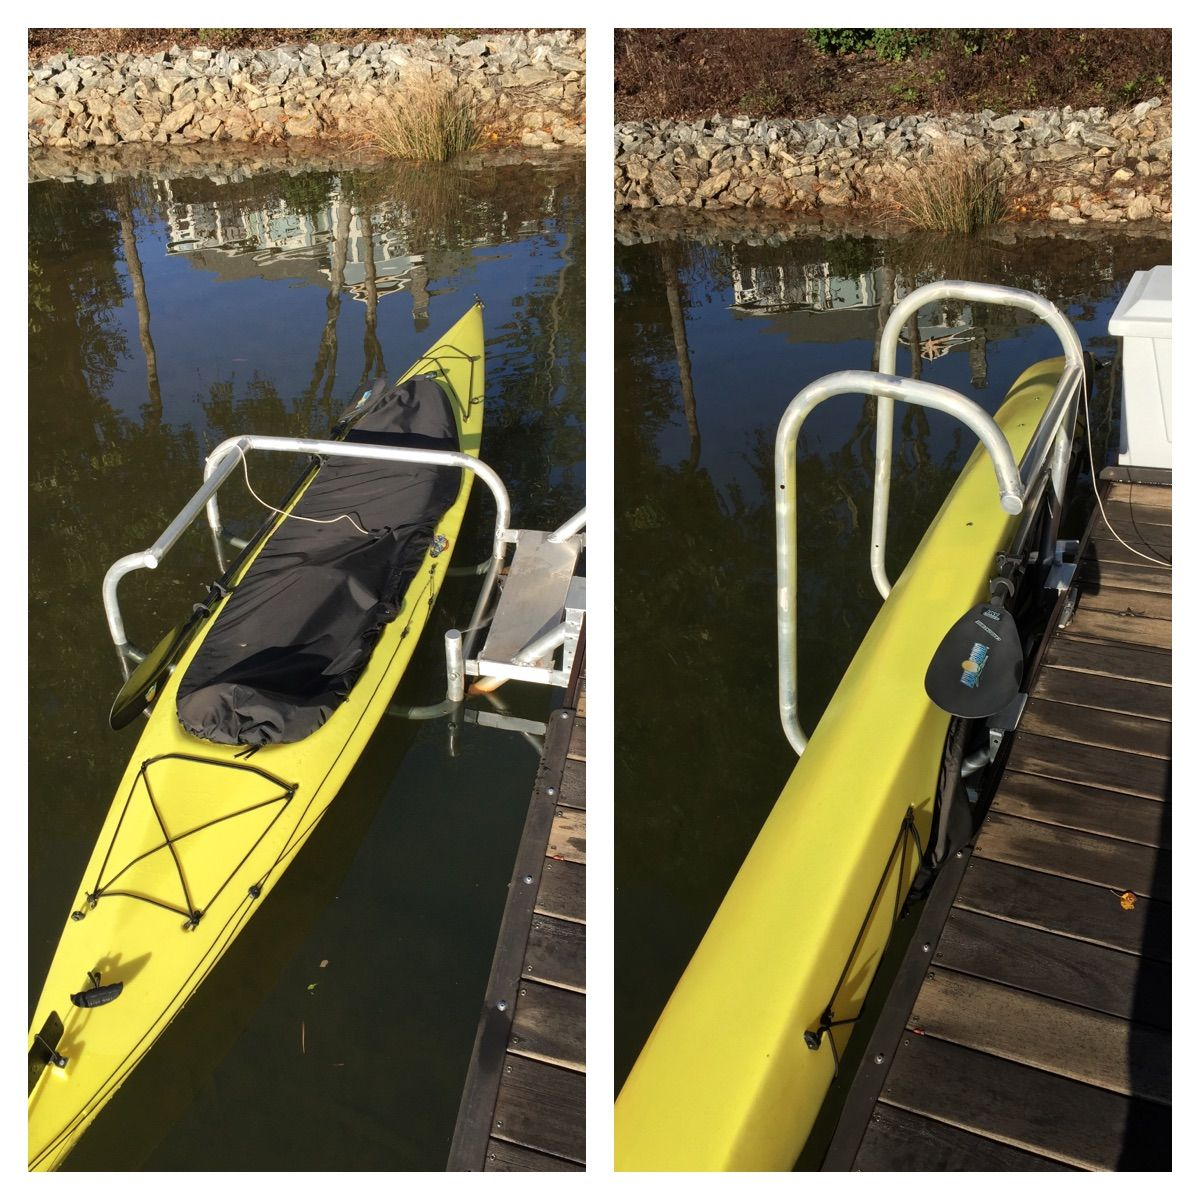 Kayak Stow U0026 Go. Kayak Launch And Storage System For Your Boat Dock.